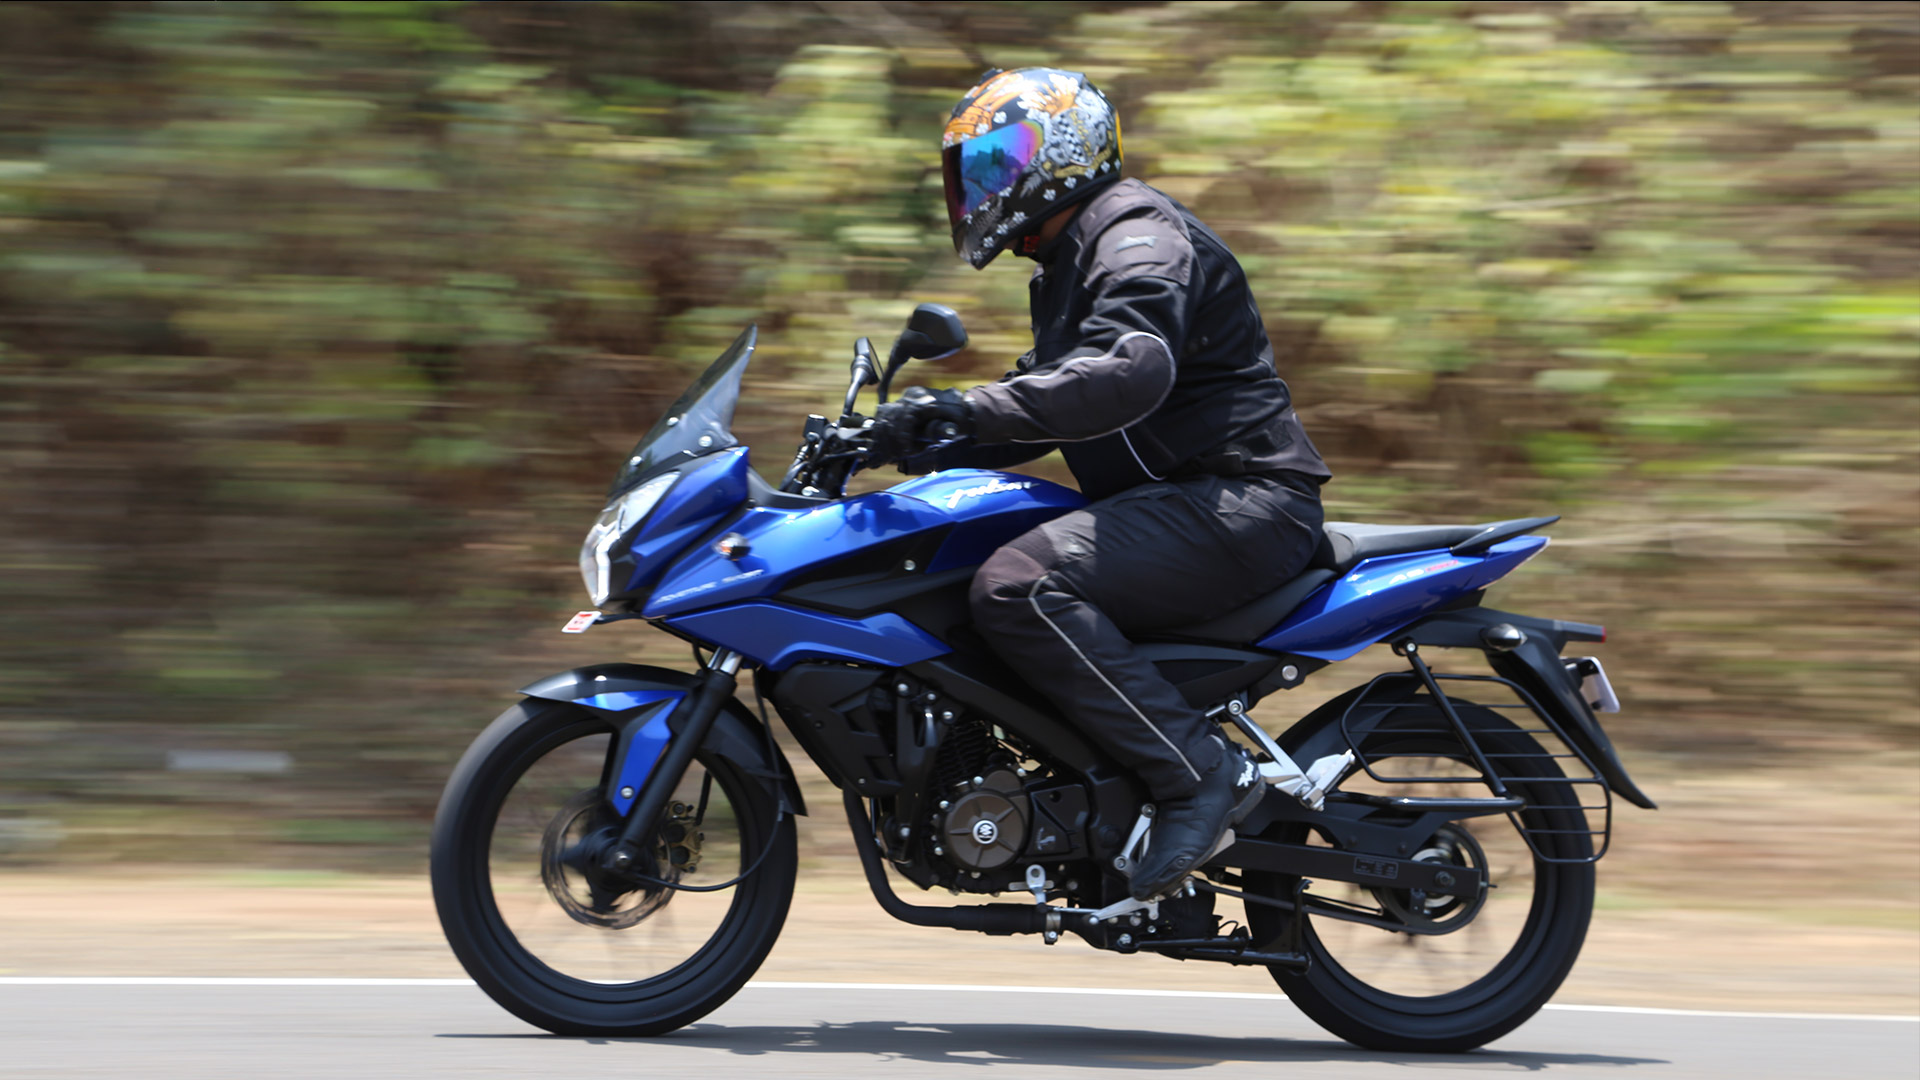 bajaj pulsar synopsis In 2010, bajaj auto limited launch latest bajaj discover 150cc, pulsar 135cc, 220cc model changes in two wheeler market all the brand comparable with other two wheeler company that it's all brand were gave better average with new technic & cheaper price.